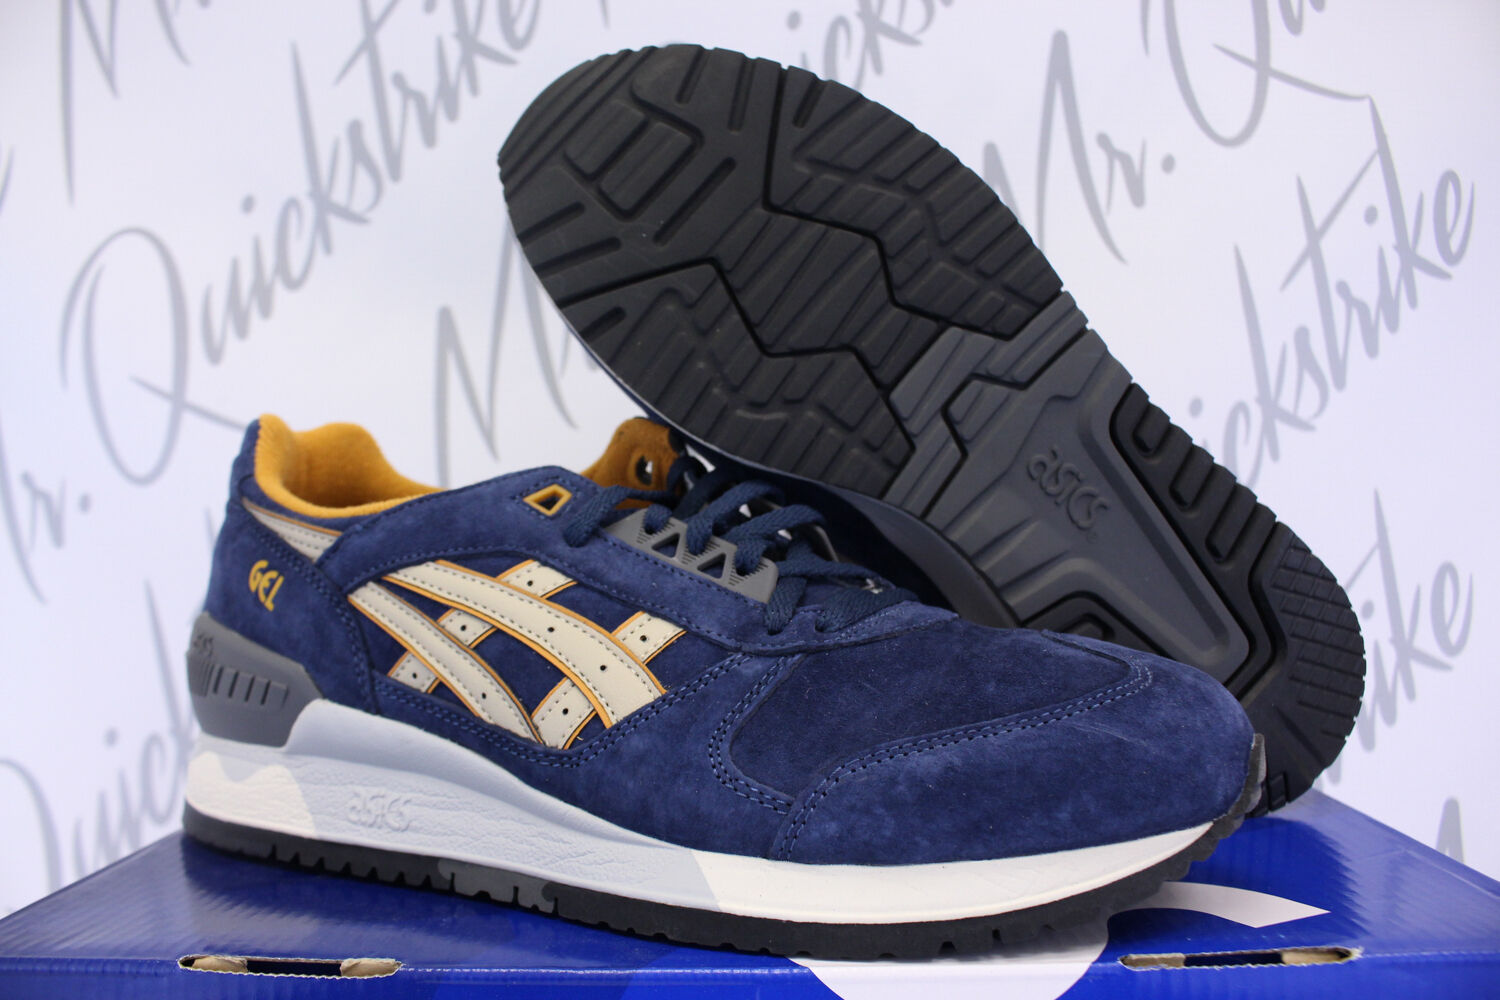 ASICS GEL CASUAL RESPECTOR SZ 7 PREMIUM CASUAL GEL PACK NAVY SAND H5X2L 5005 a61901